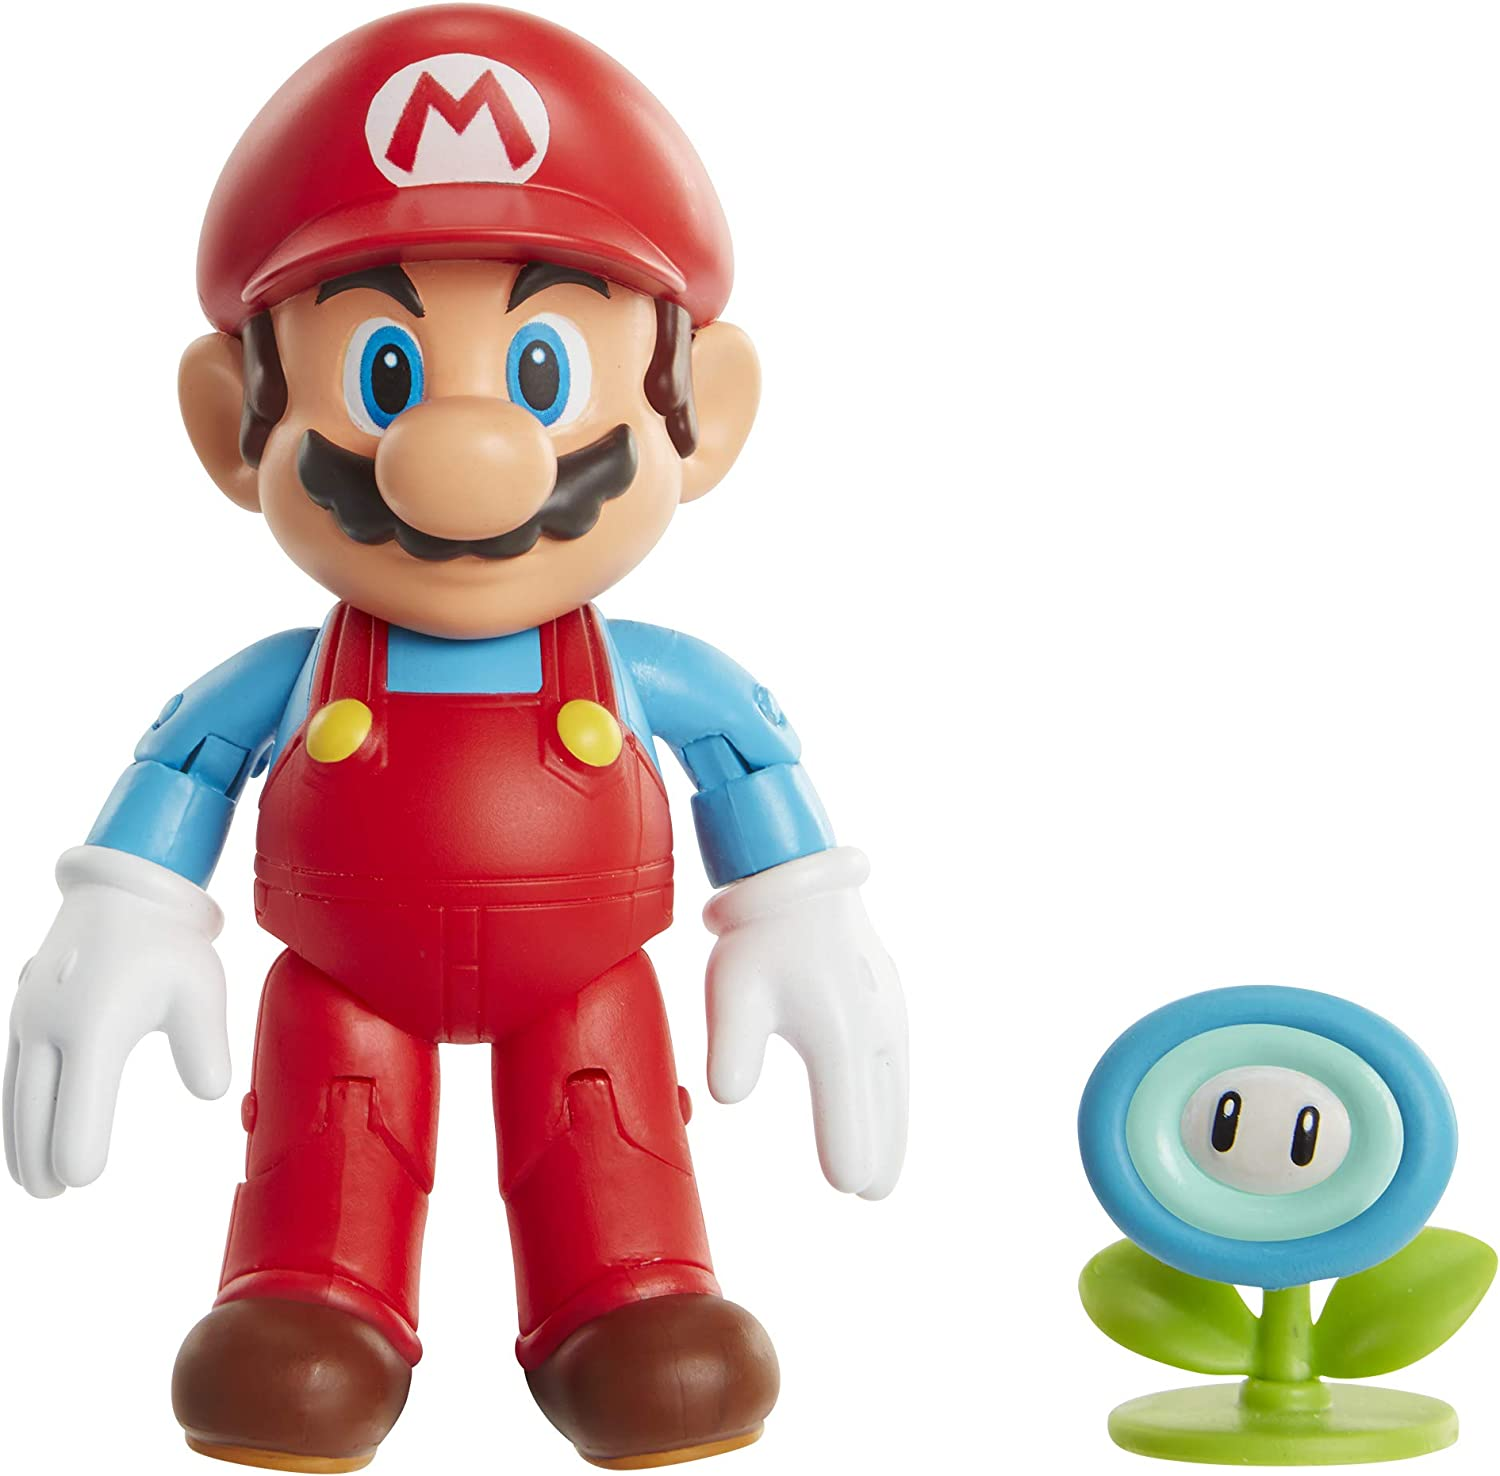 Amazon Com Super Mario Action Figure 4 Inch Ice Mario Collectible Toy With Ice Flower Accessory 406804 Toys Games